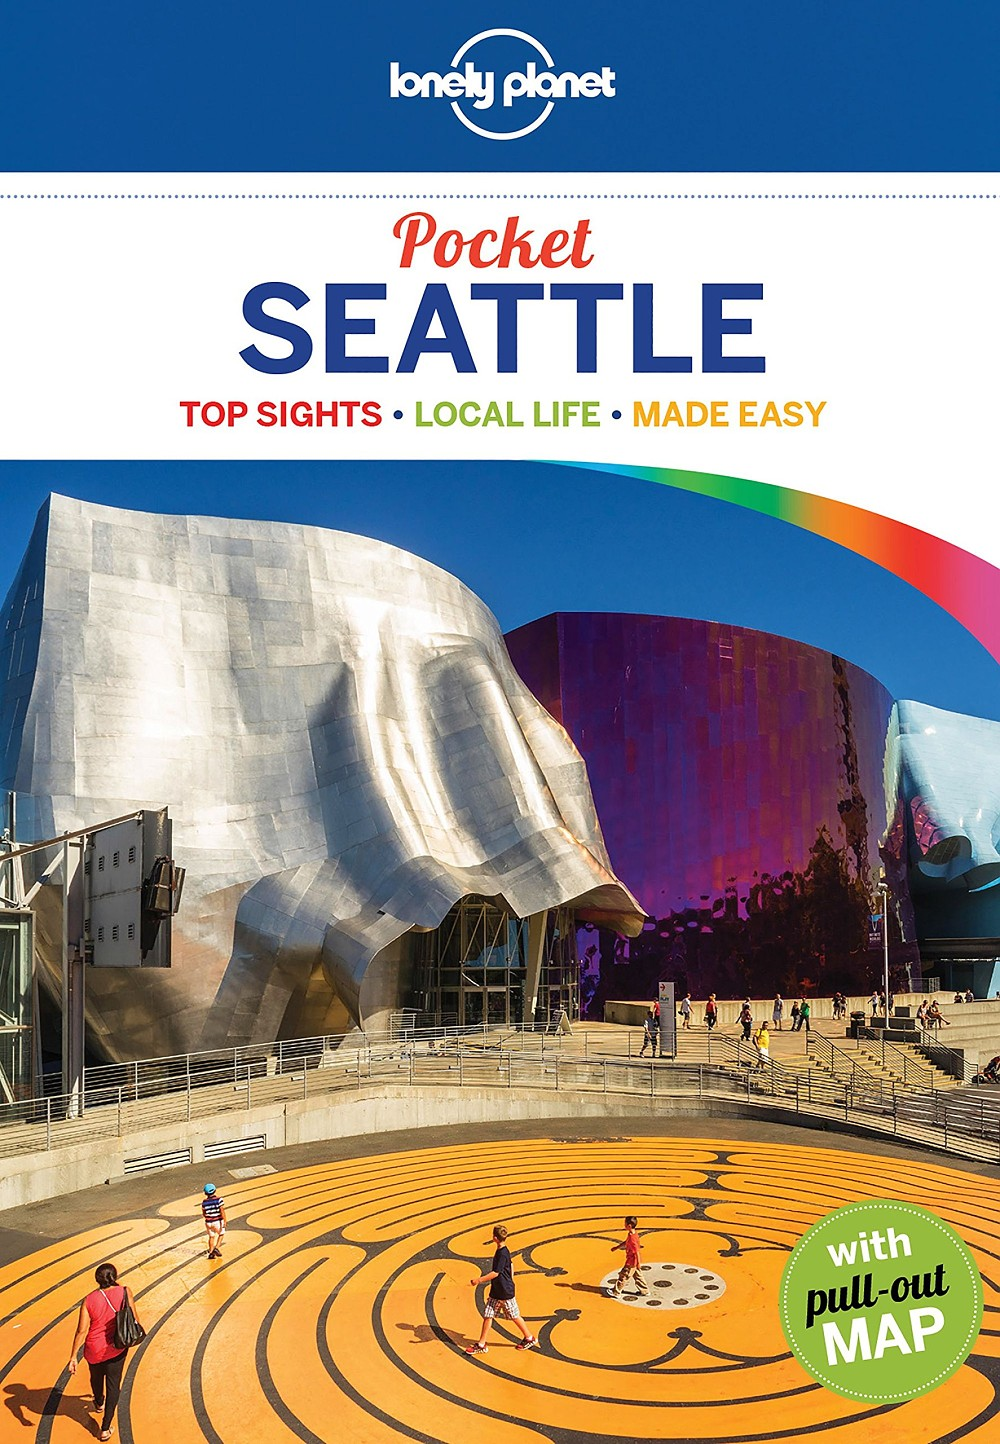 Lonely Planet Seattle Pocket guide 1.